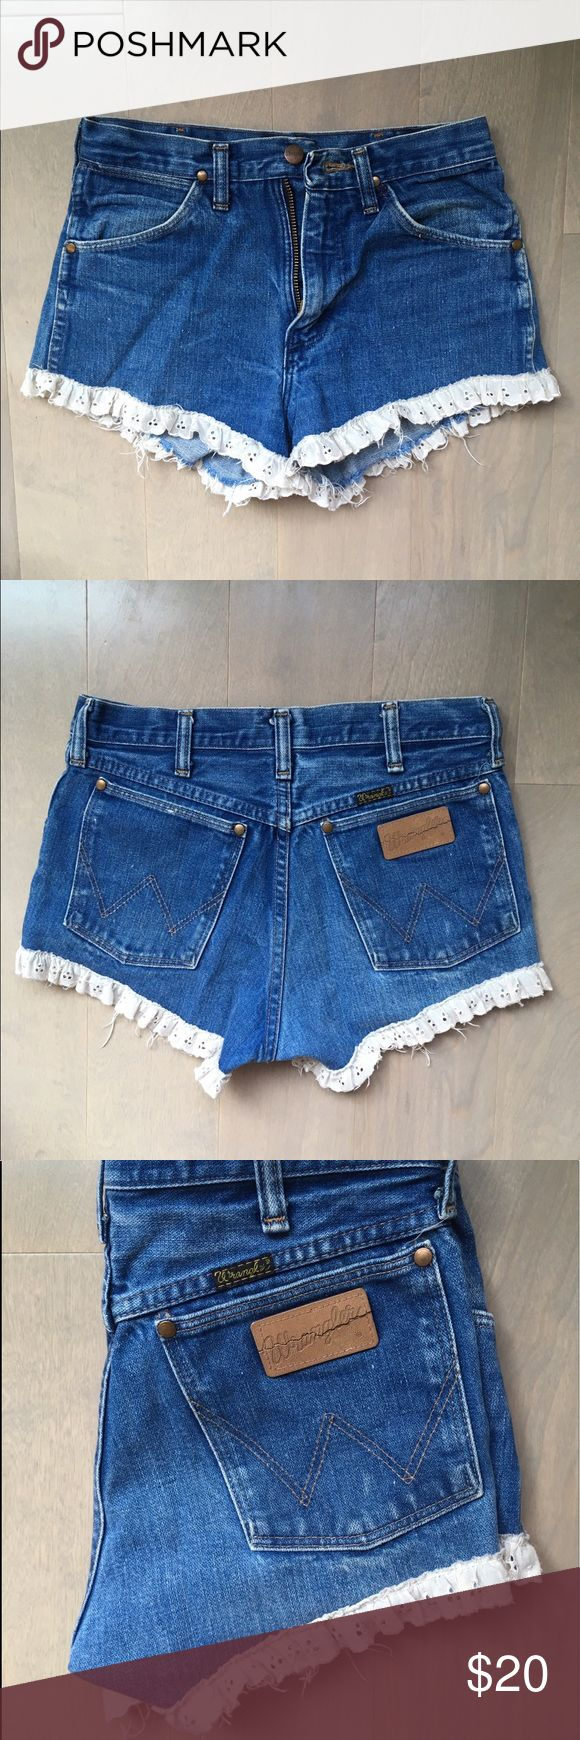 Urban Outfitters Wrangler lace trim shorts Cheeky lace trim shorts with ahdorable details! Great color - not too washed out. Slimming cut and great fit! Perfect for summer! Urban Outfitters Shorts Jean Shorts